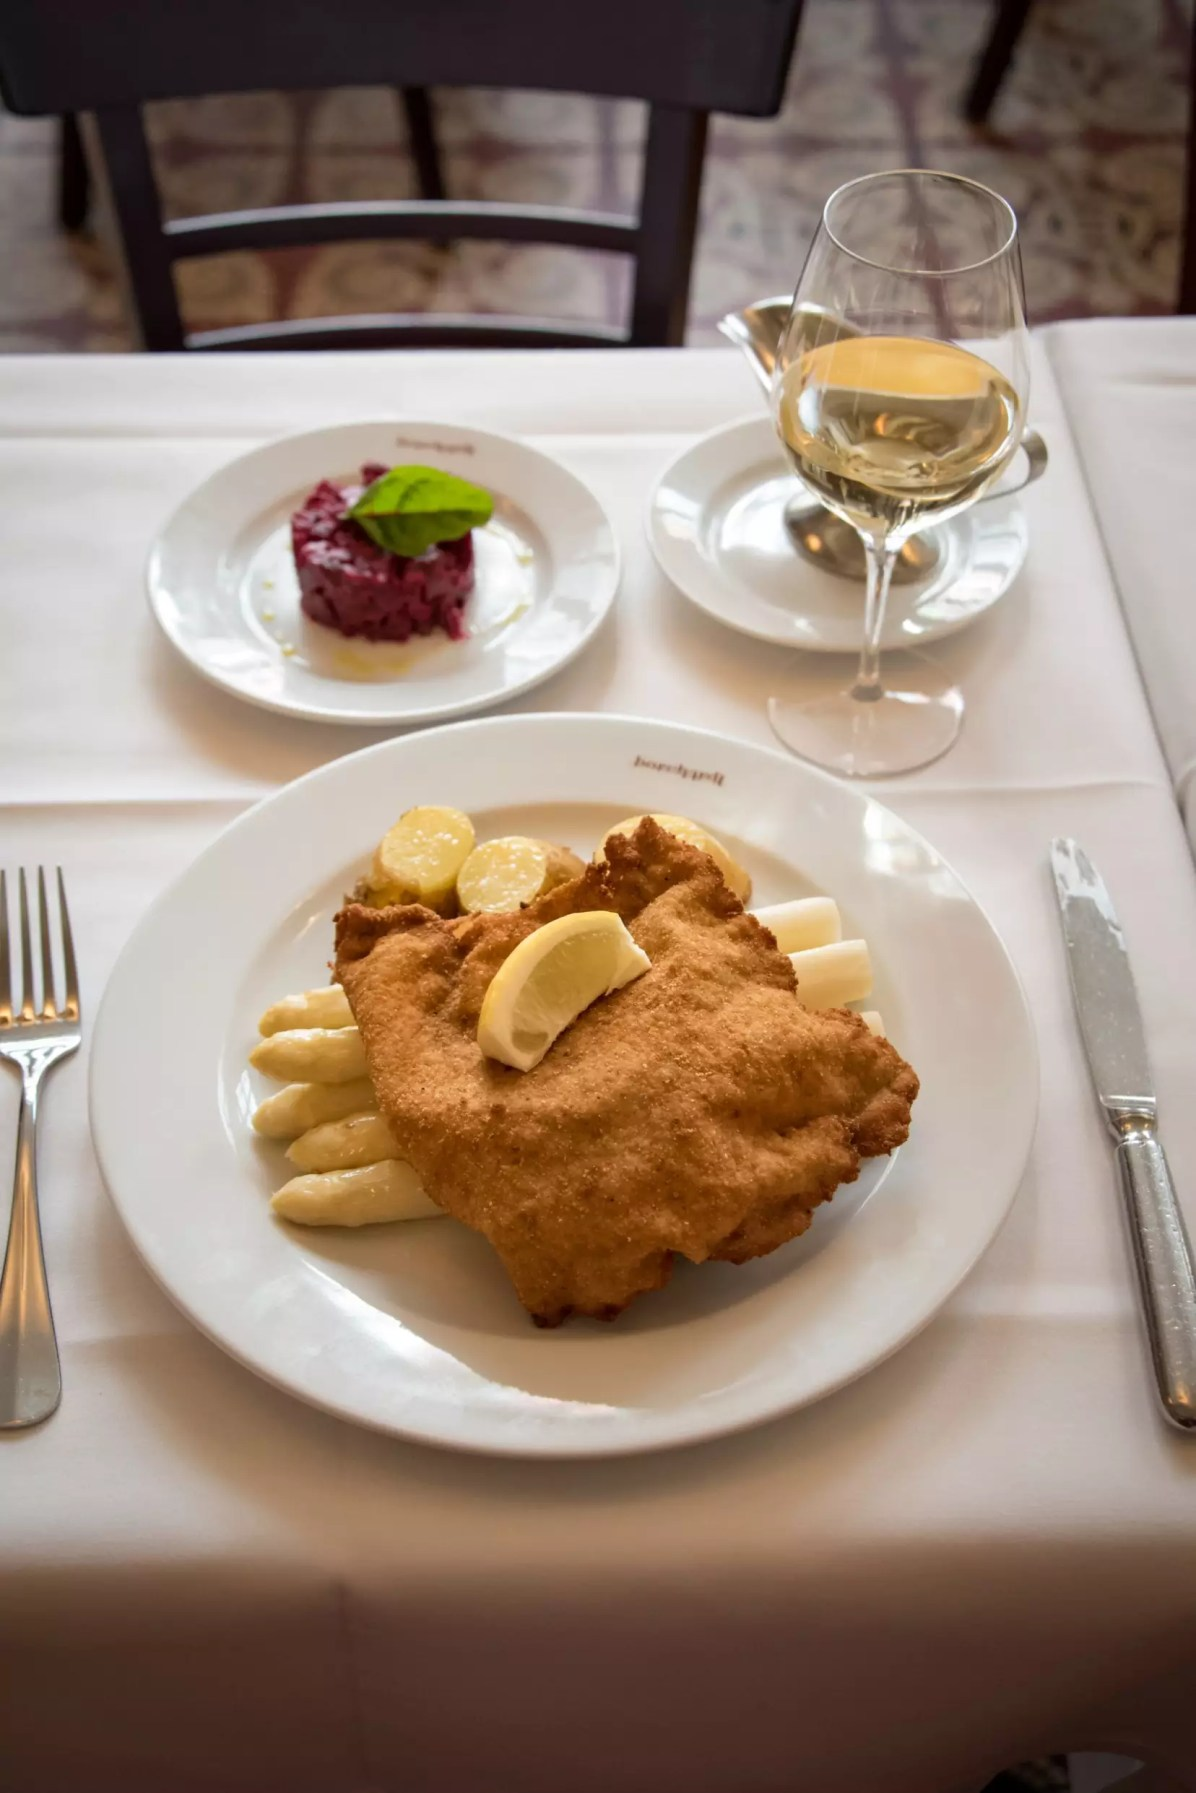 Berlin Travel Blog - Borchardt, Berlin: The famous schnitzel Where to stay in Berlin